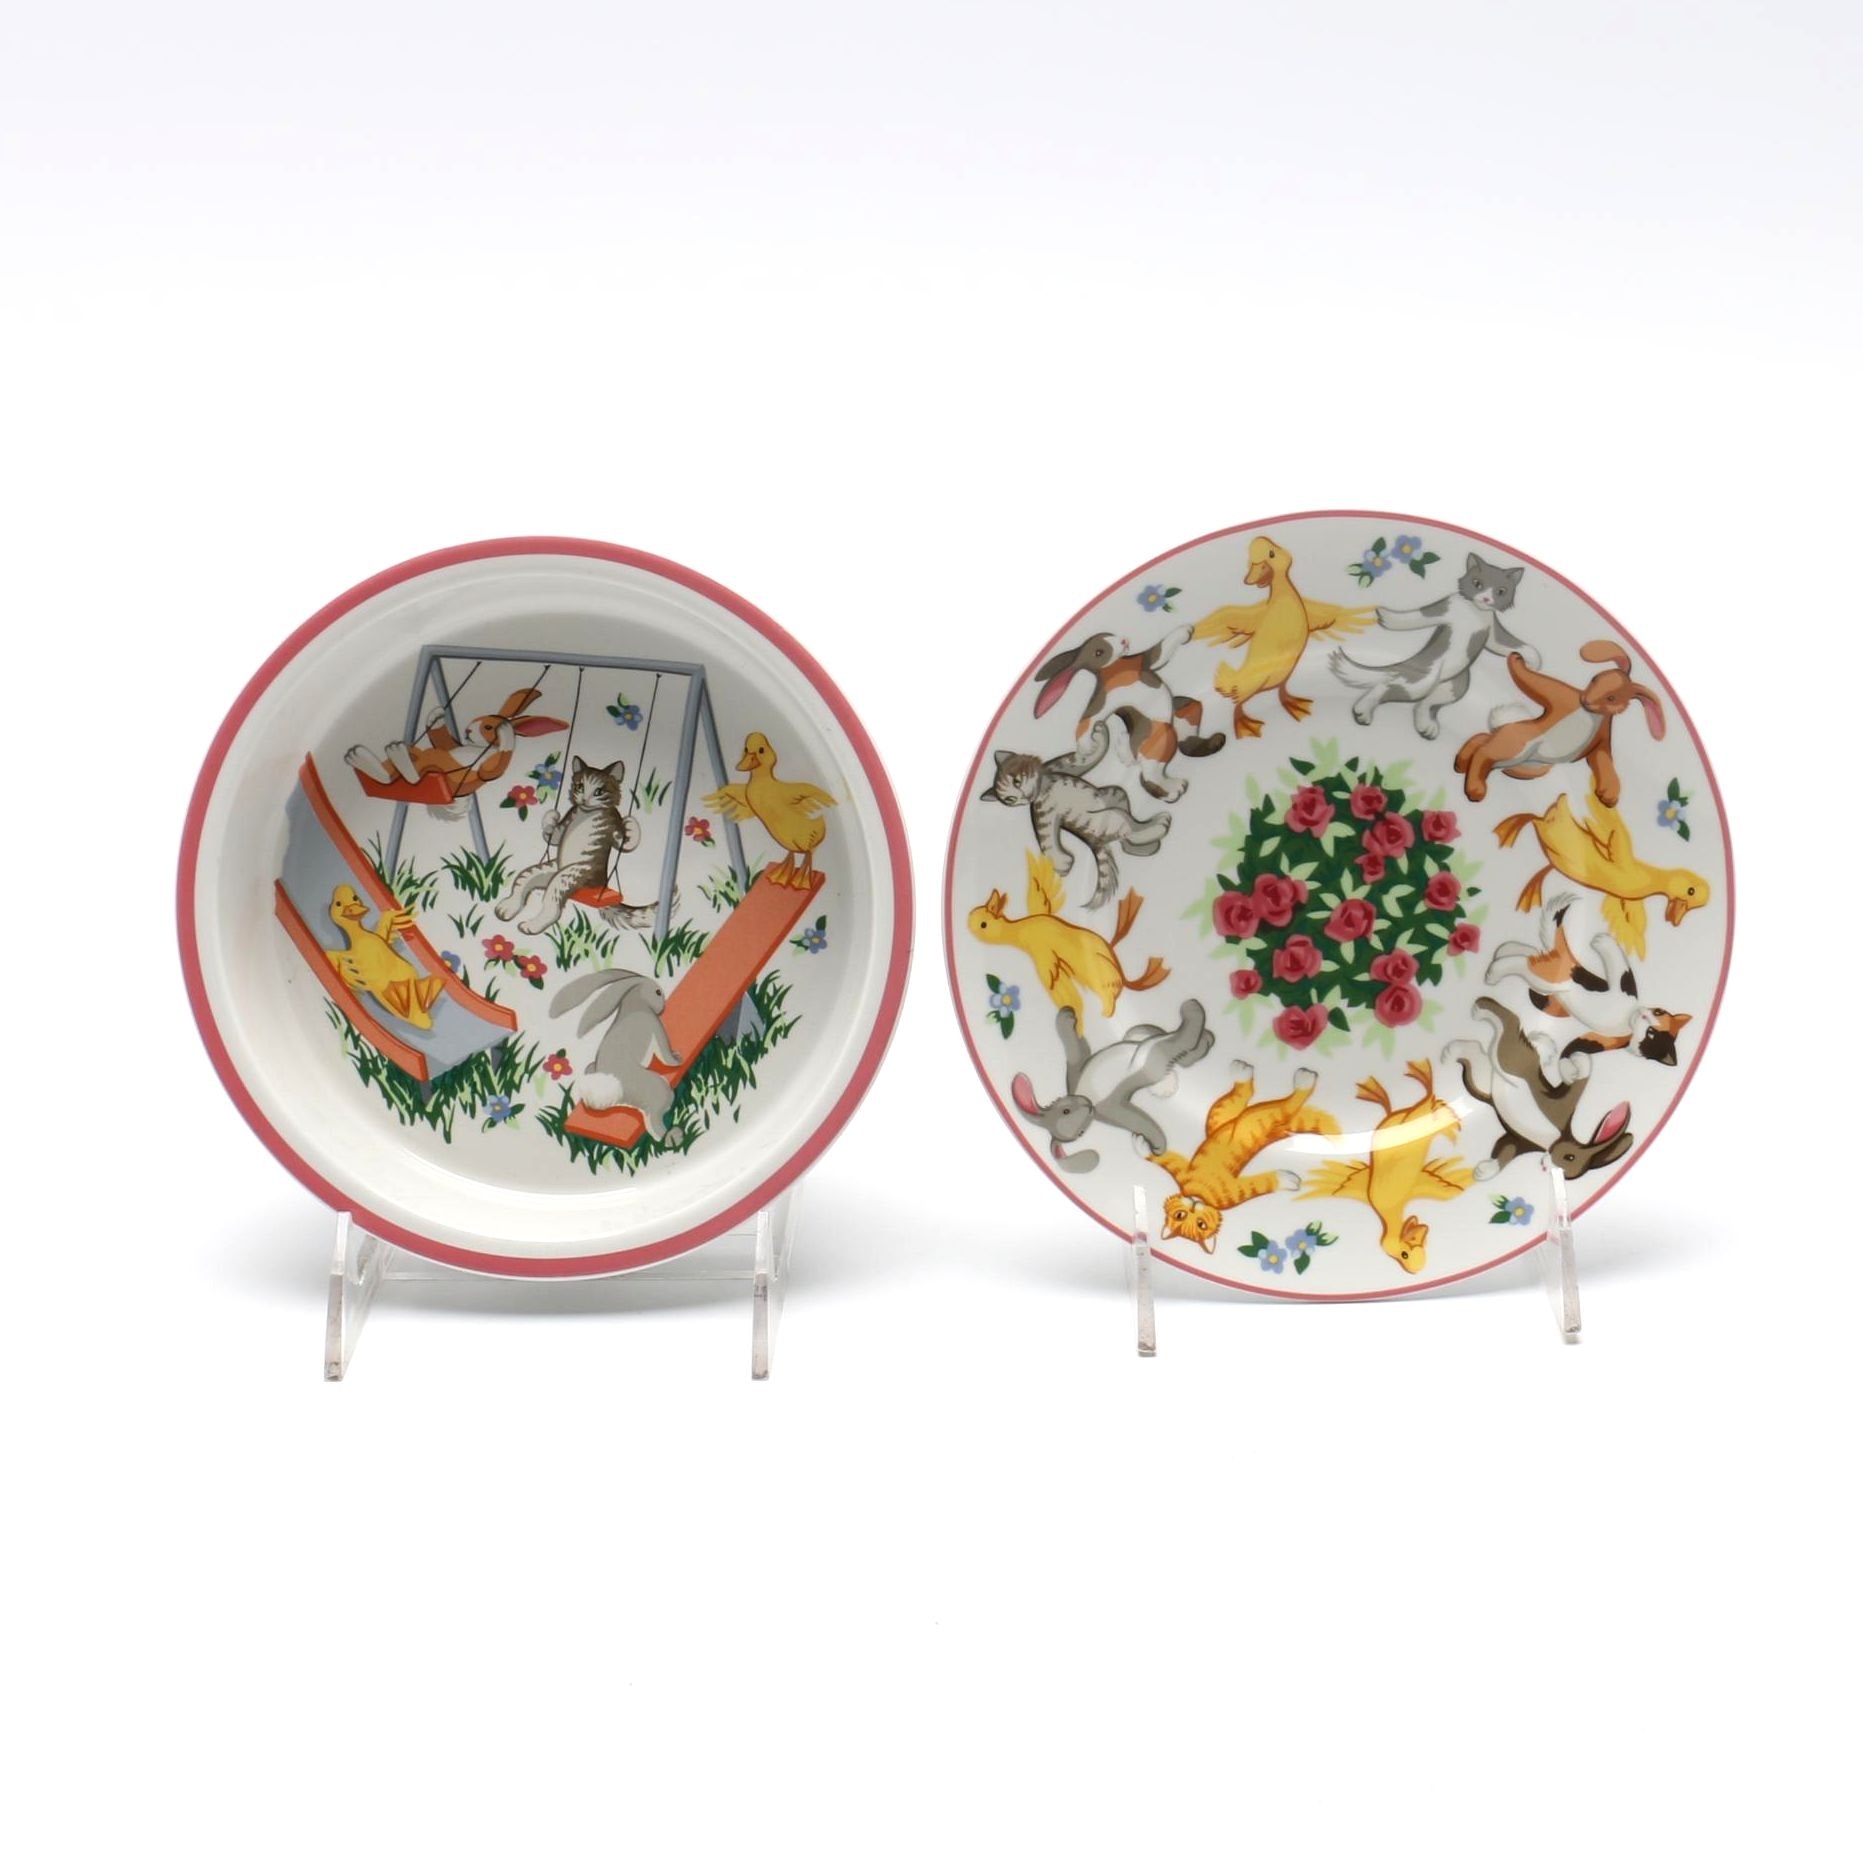 "Tiffany & Co. ""Tiffany Playground"" Children's Plate and Bowl"